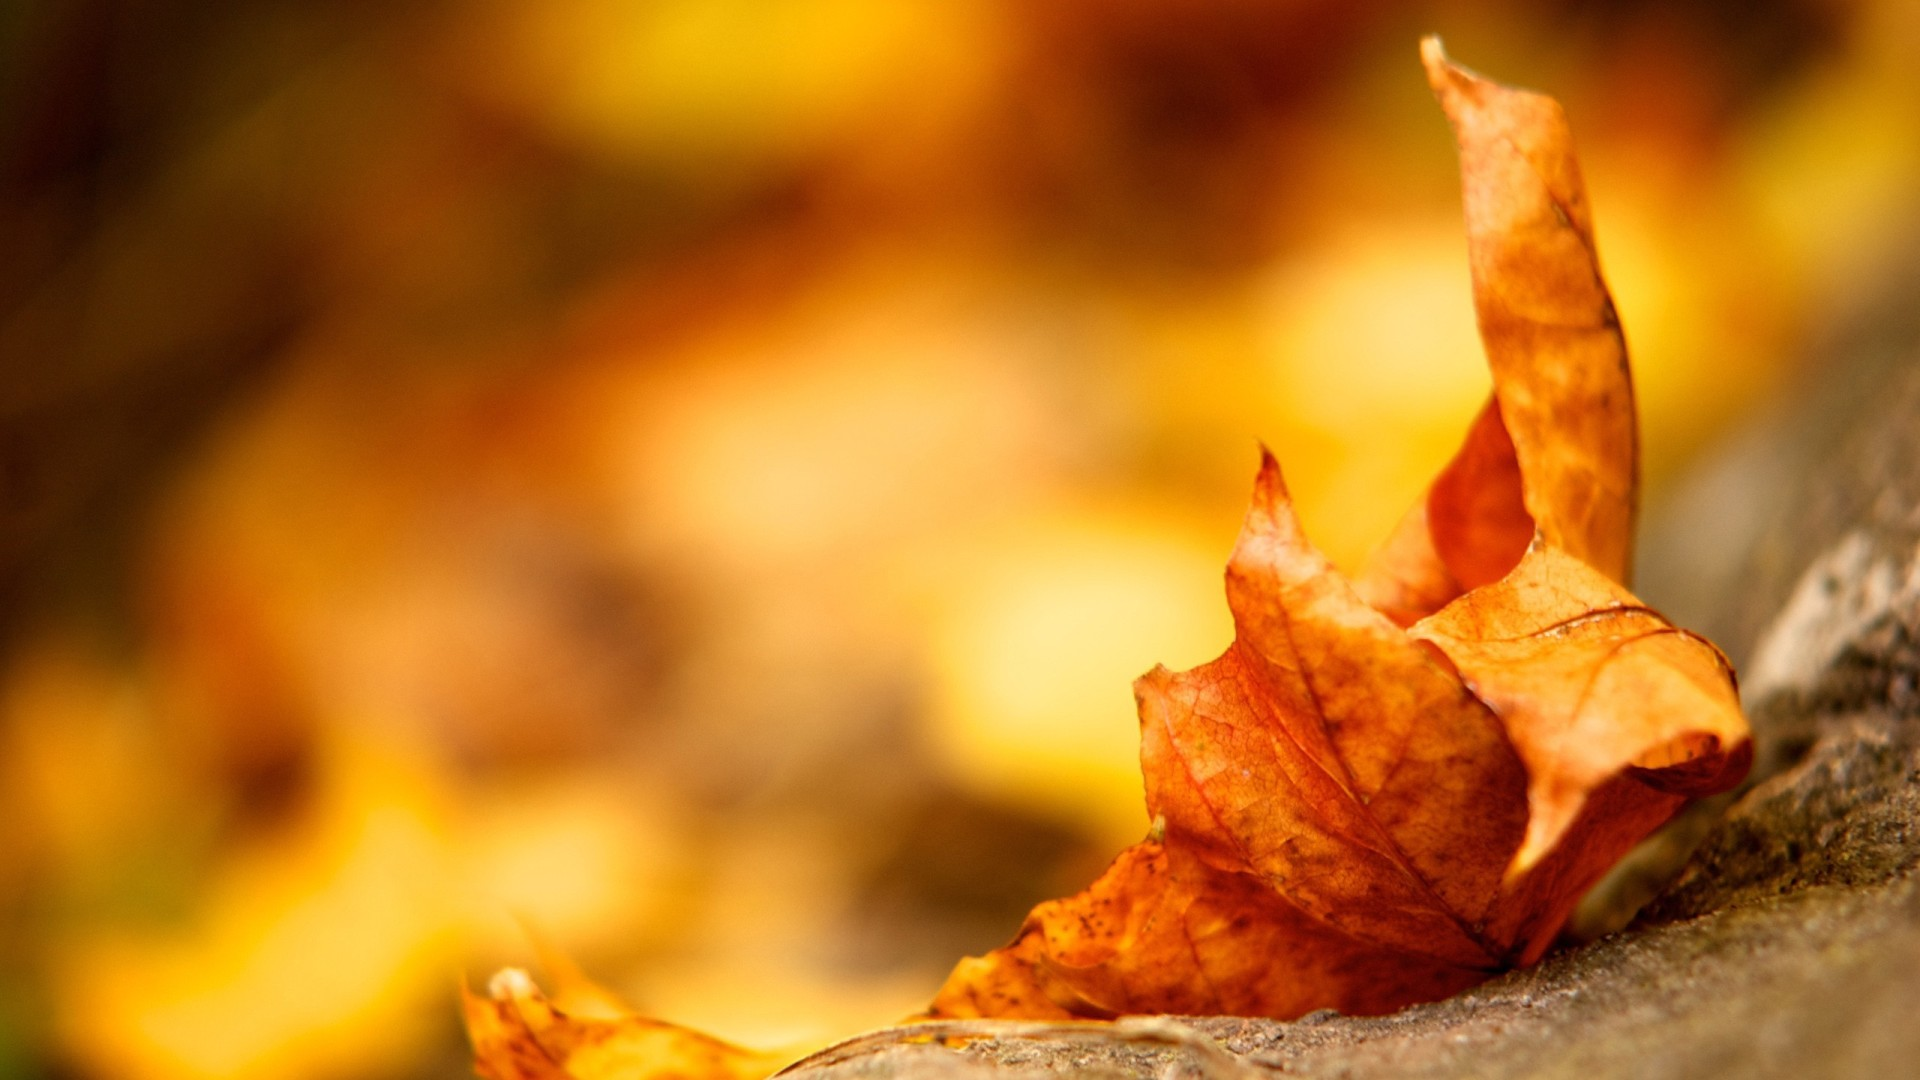 Pretty Leaves Macro Wallpaper 39026 1920x1200 px